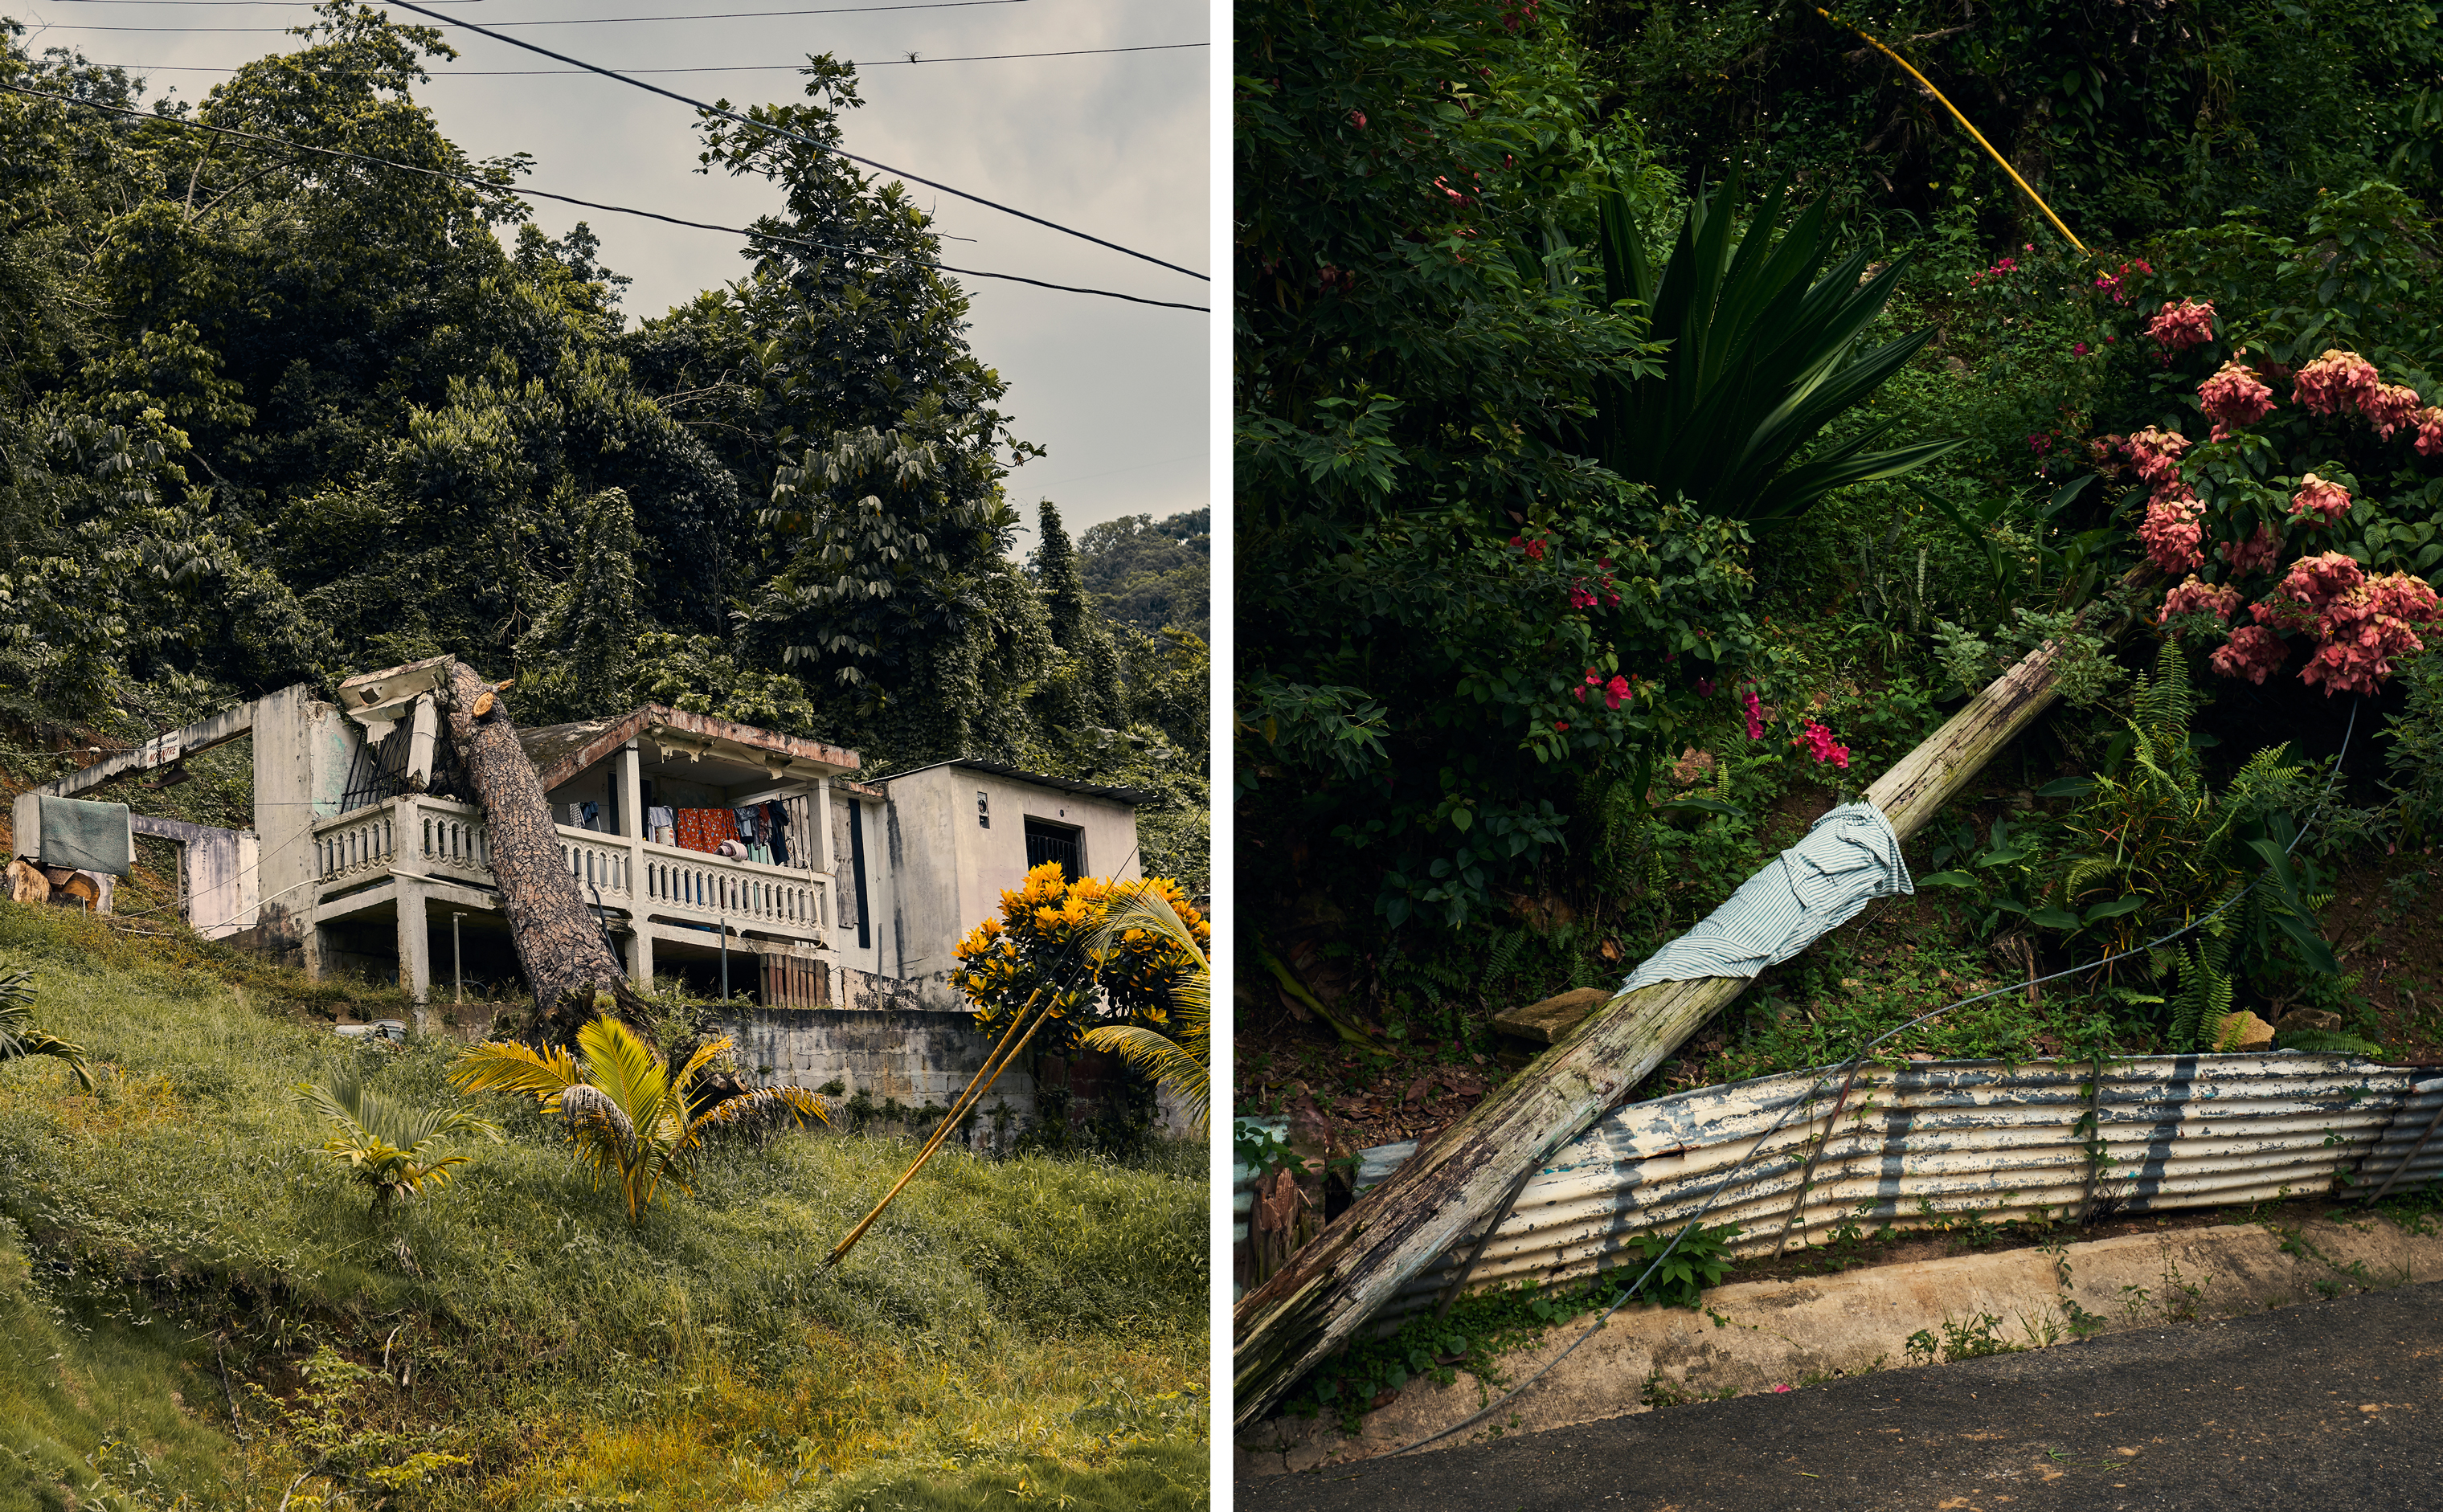 A house damaged by a fallen tree in the Caníaco neighborhood of Utuado; a downed power line.